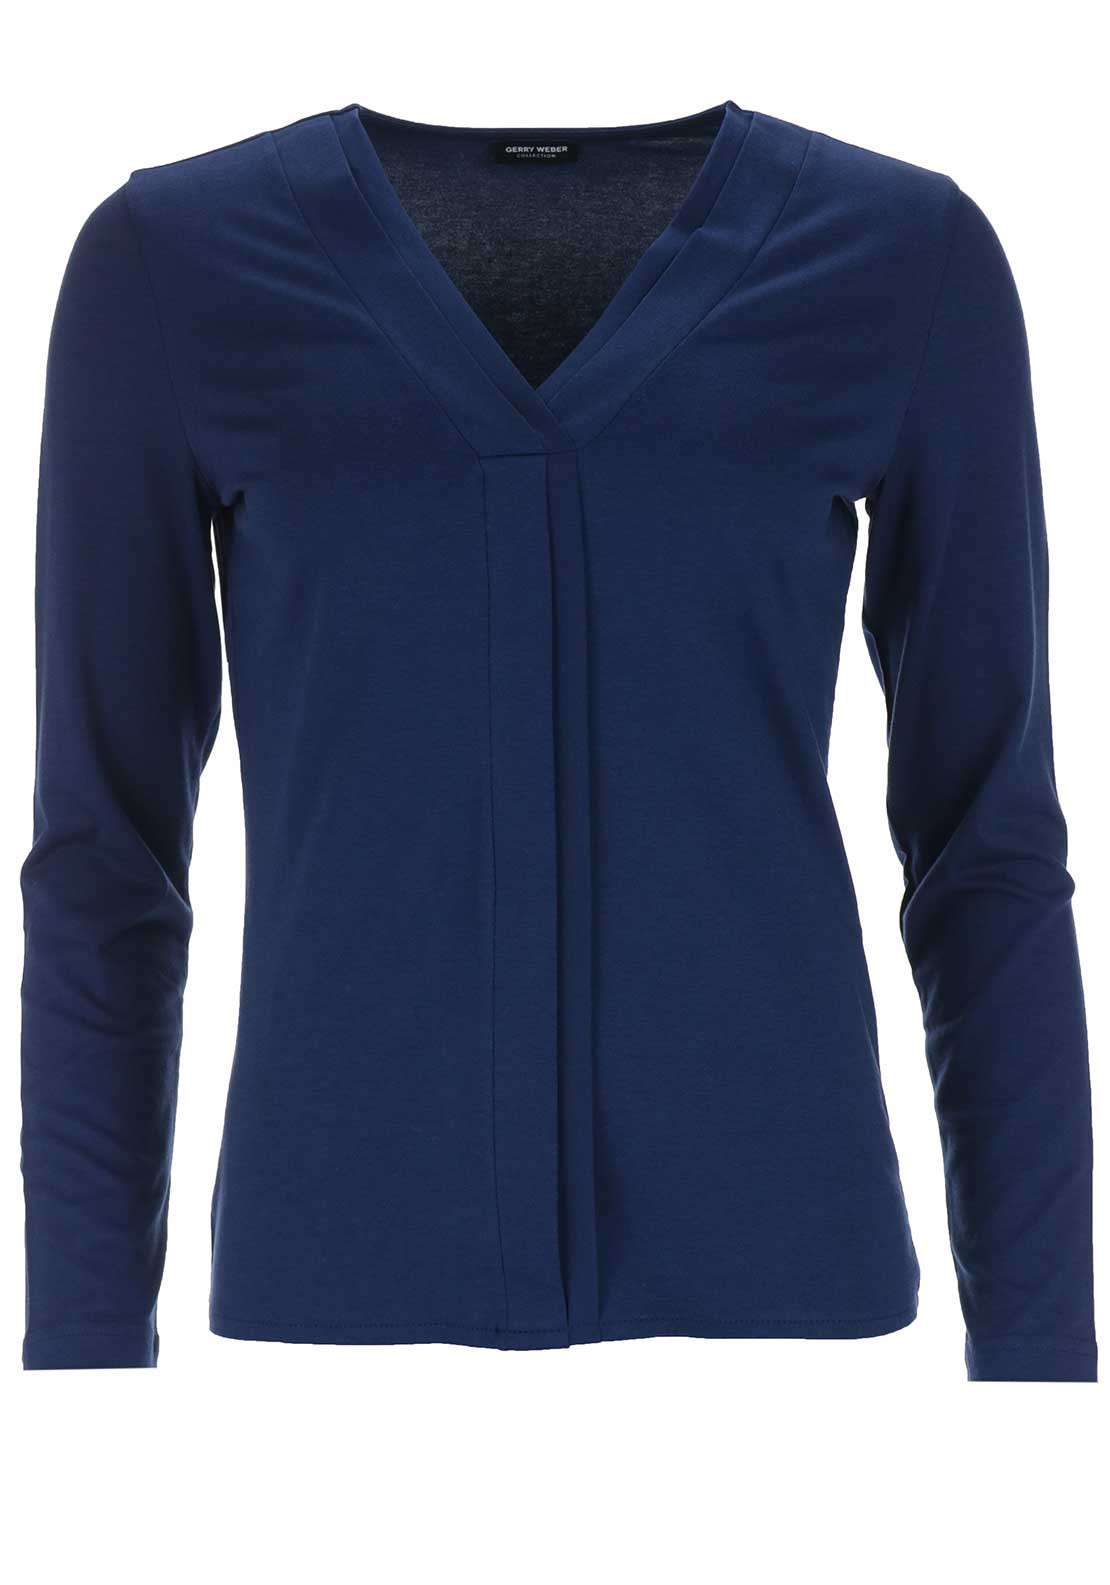 Gerry Weber V-Neck Long Sleeve Top, Navy